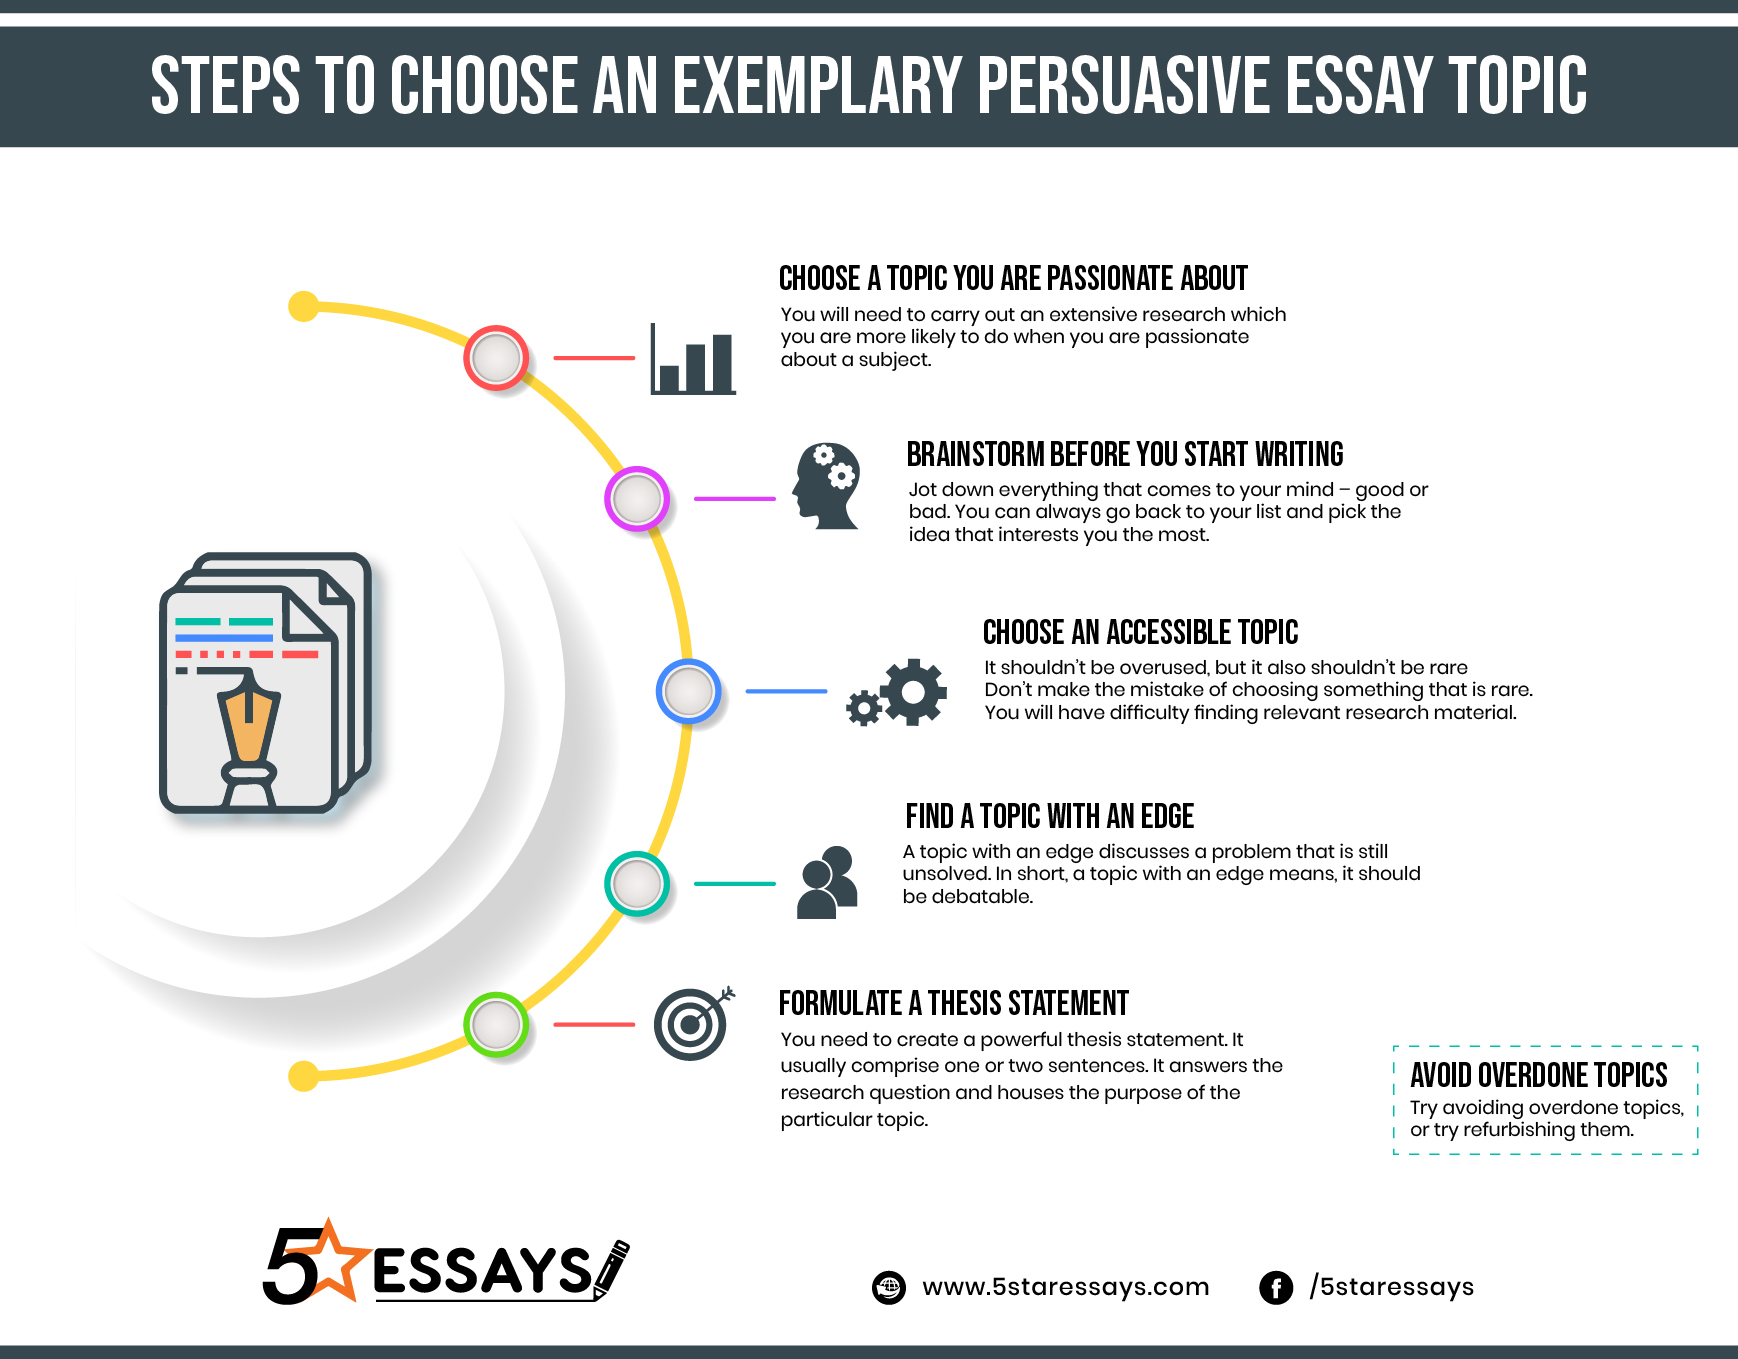 Steps To Choose an Exemplary Persuasive Essay Topic